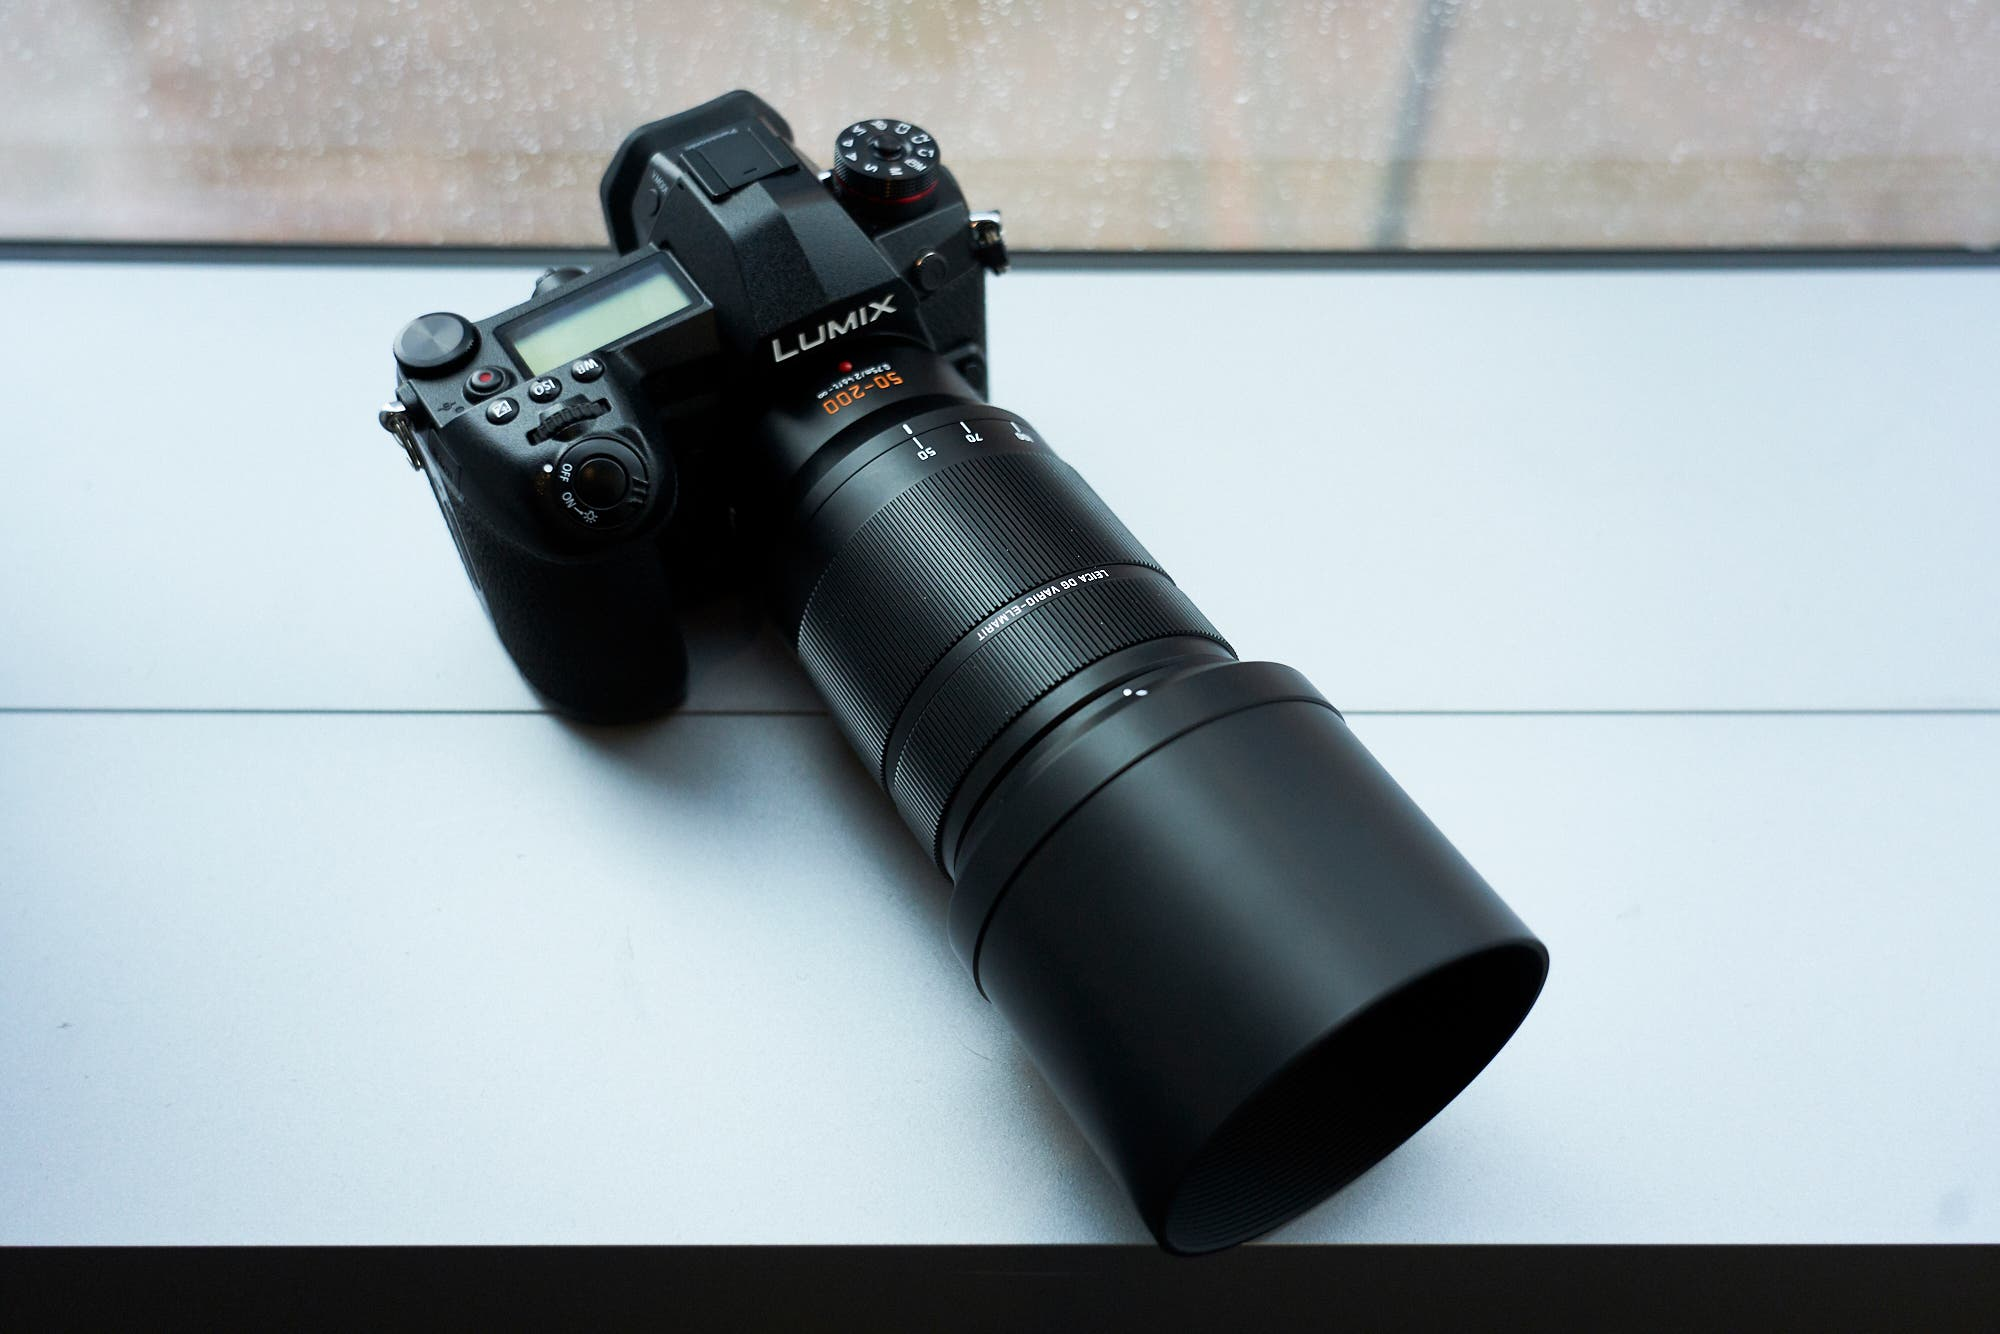 The Panasonic 50 200mm F28 40 Asph Is Quite Superzoom Leica Dg Elmarit F 28 Power Ois Lens 1 Dual Can Be Used With Lumix Gx9 Gx8 And Gx80 85 2 Is2 G9 Gh5 G80 G81 G85 3 To Sold Separately As Optional